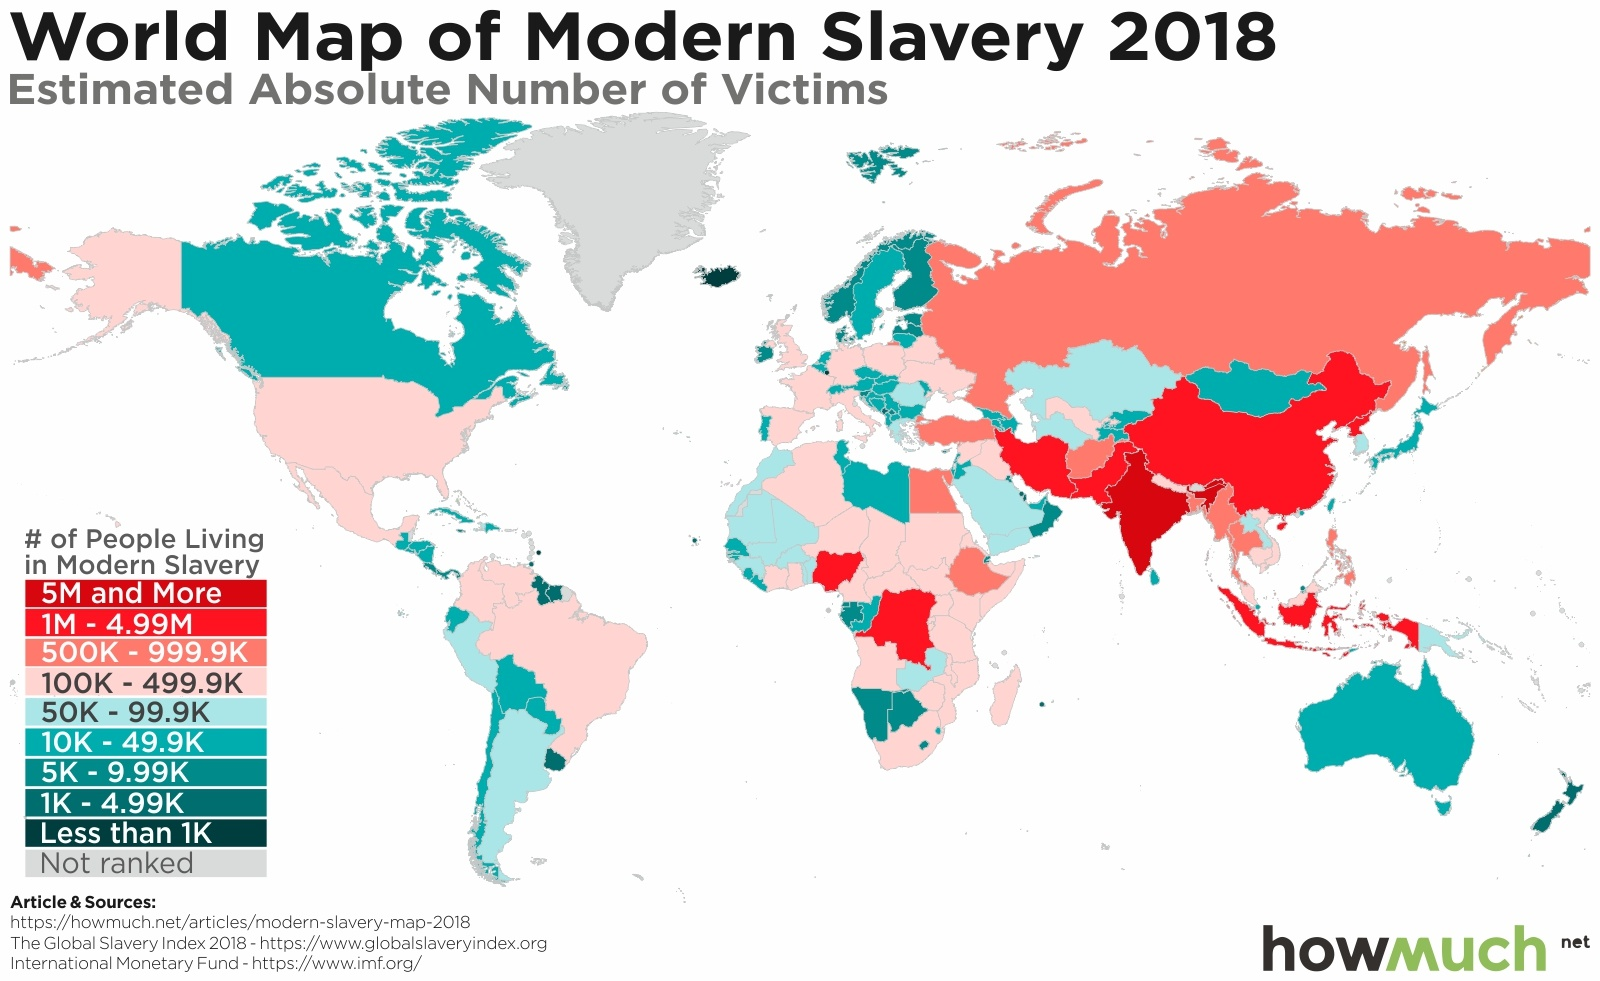 These Maps Reveal the Secret World of Modern Slavery on map of france, map of usa, map of africa, map of dubai, map of iraq, map of georgia, map of thailand, map of california, map of taiwan, map of belgium, map of denmark, map of florida, map of new zealand, map of canada, map of finland, map of austria, map of us, map of countries, map of china, map of texas, map of hong kong, map of malaysia, map of indonesia, map of europe, map of new york, map of germany, map of norway, map of philippines, map of north carolina, map of country, map of western hemisphere, map of vietnam, map of mexico, map of uk, map of ohio, map of south america, map of italy, map of britain, map of the united states,